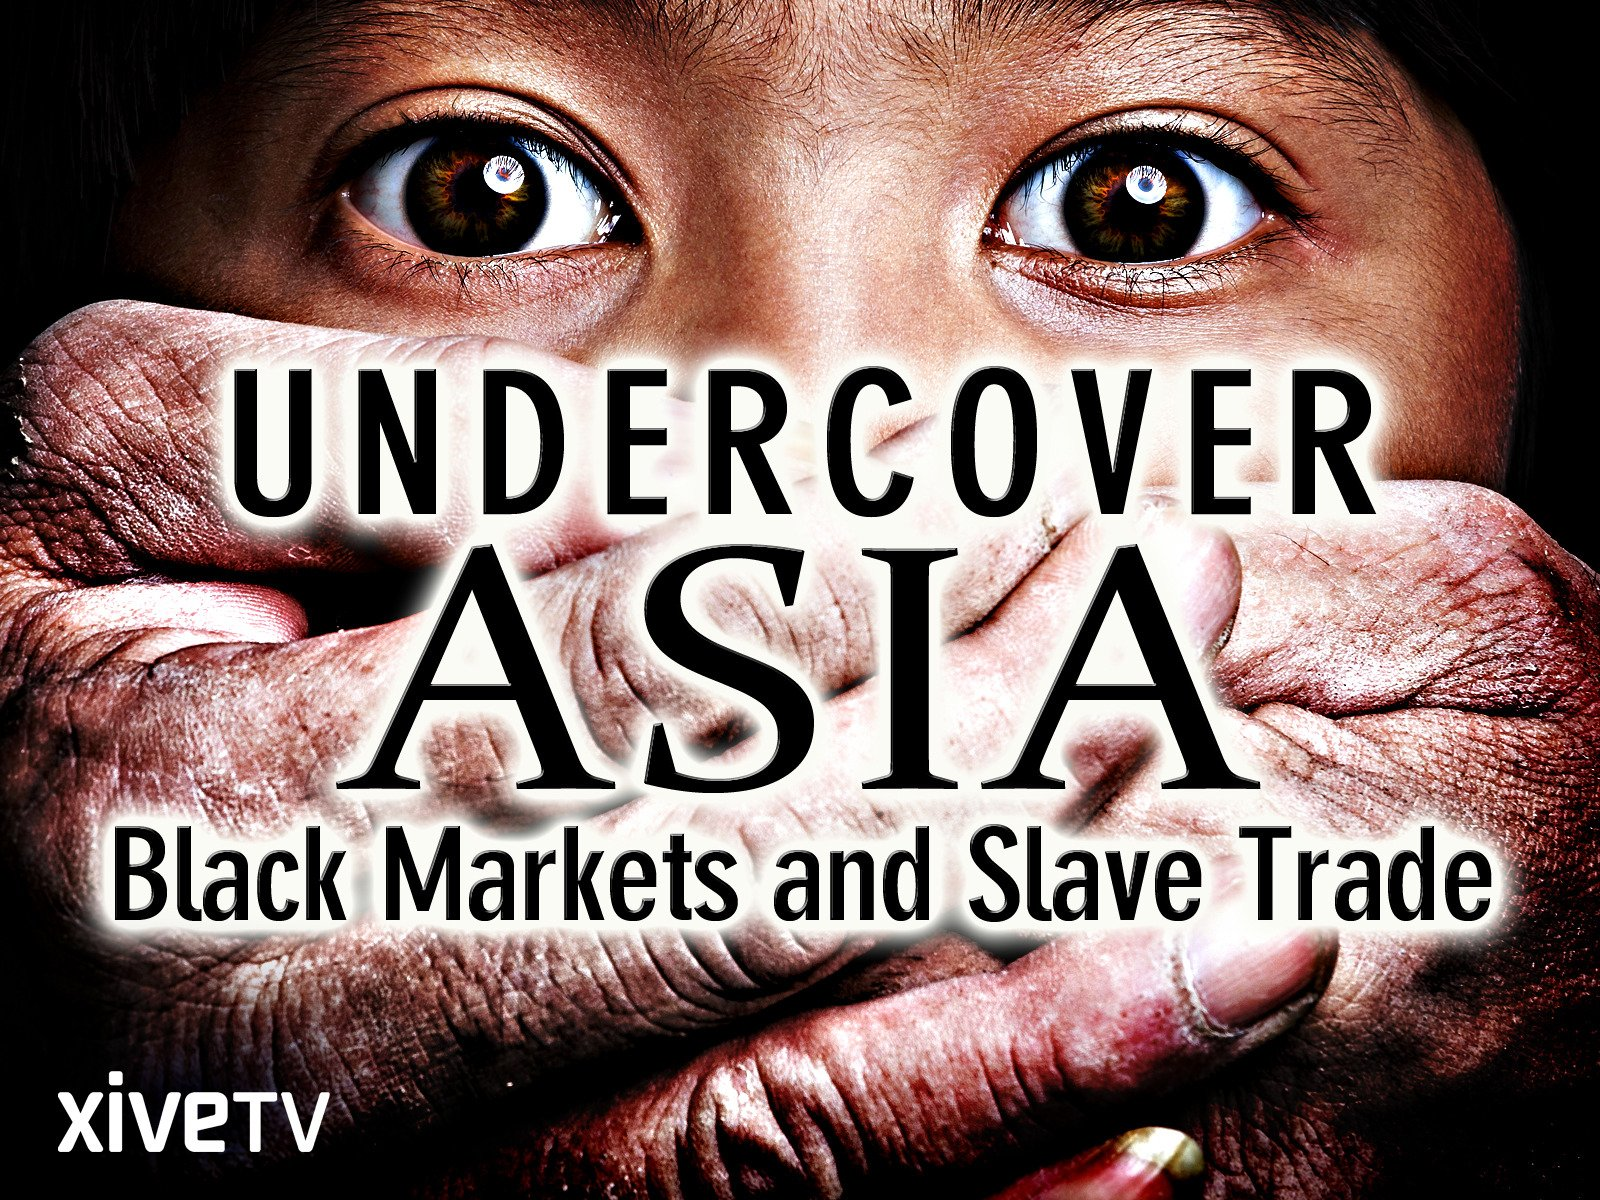 Undercover Asia: Black Markets and Slave Trade - Season 1